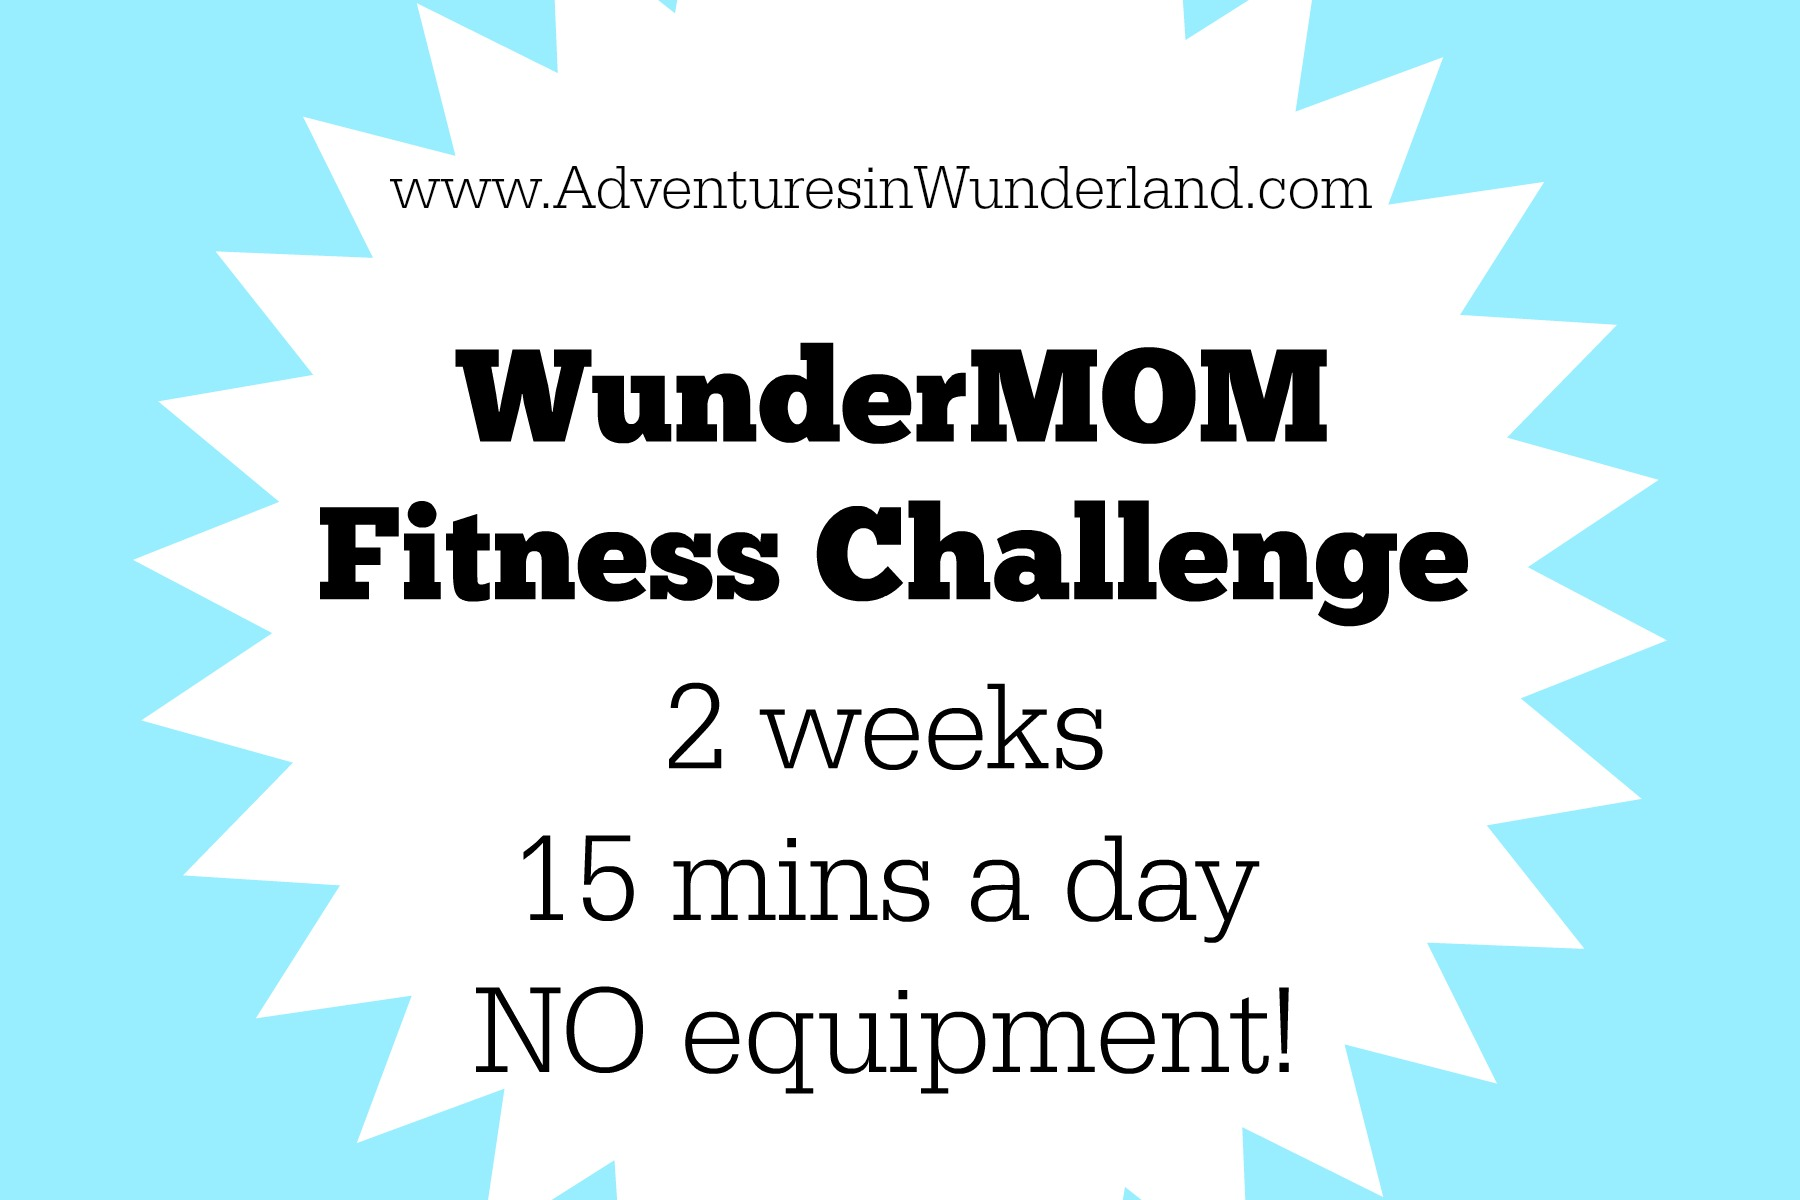 WunderMOM Fitness Challenge: 2 weeks, 15 minutes a day, NO equipment!